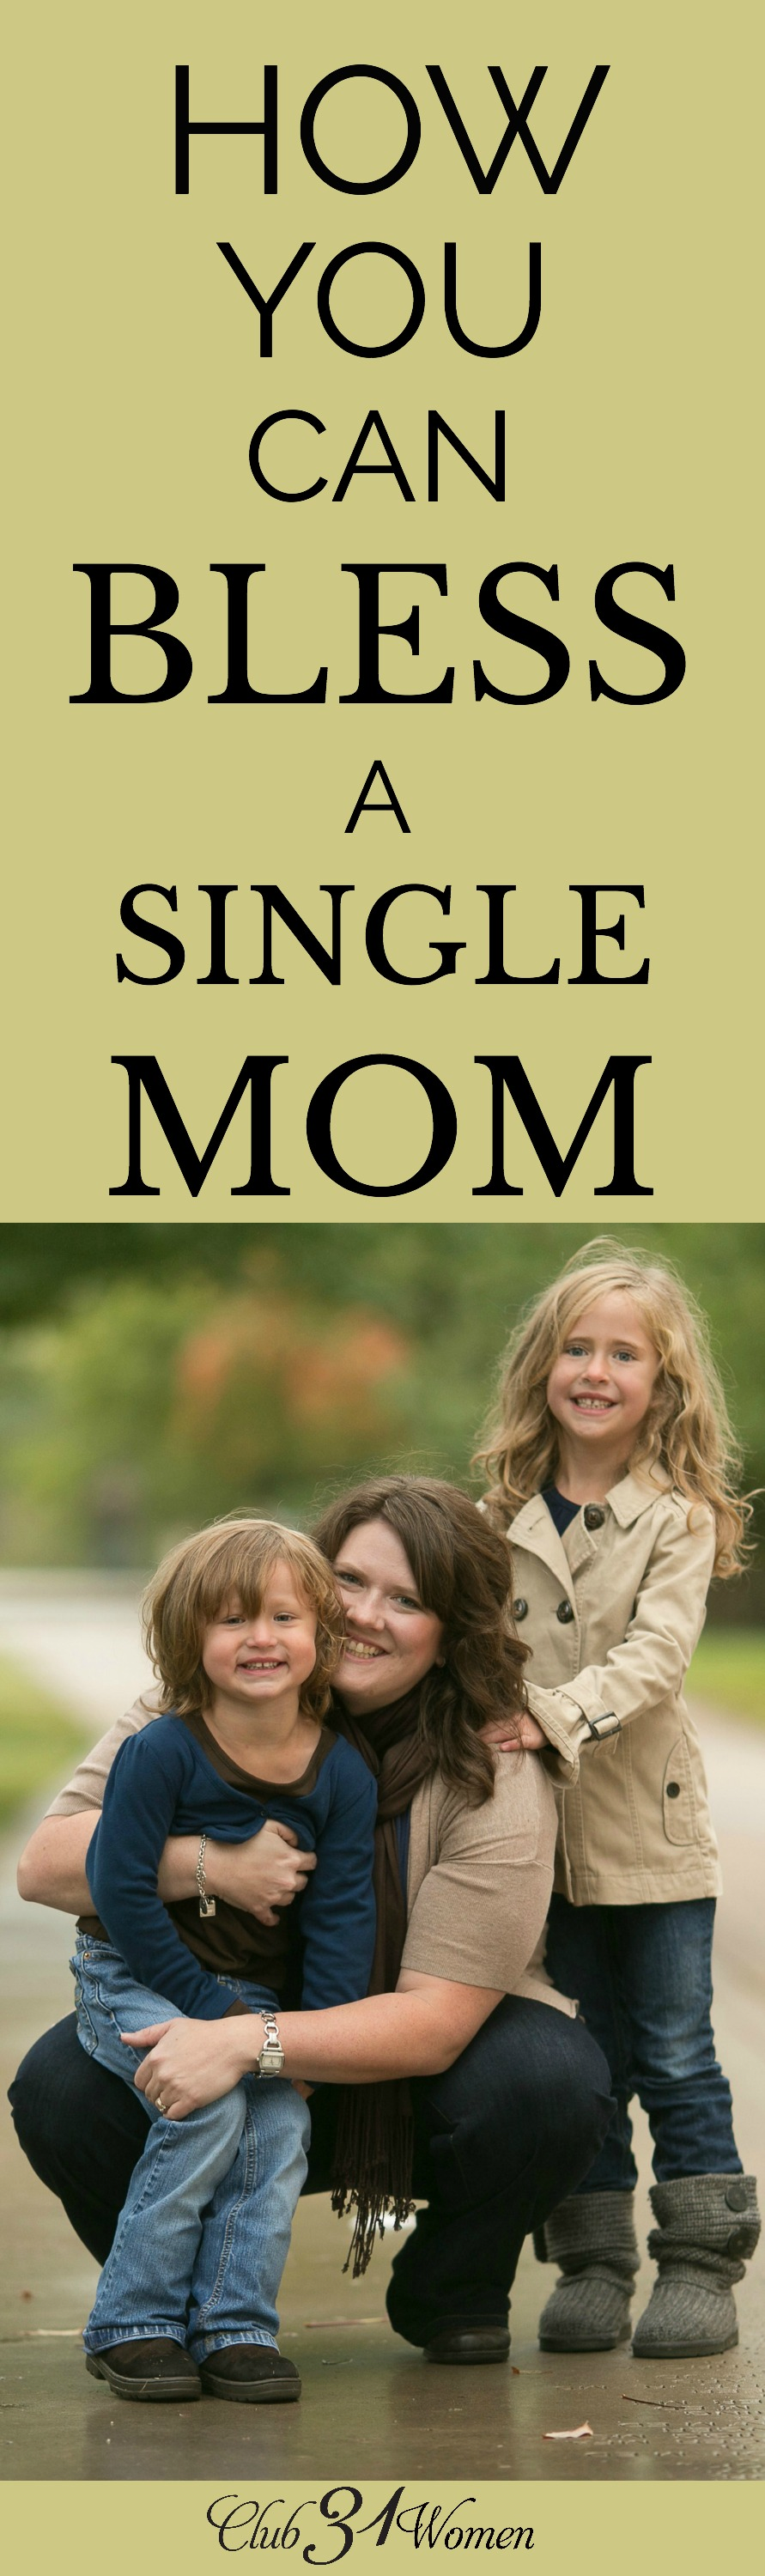 Single moms need the love of their surrounding community in ways we may not fully understand. Here are some wonderful ways to bless a single mom you know! via @Club31Women